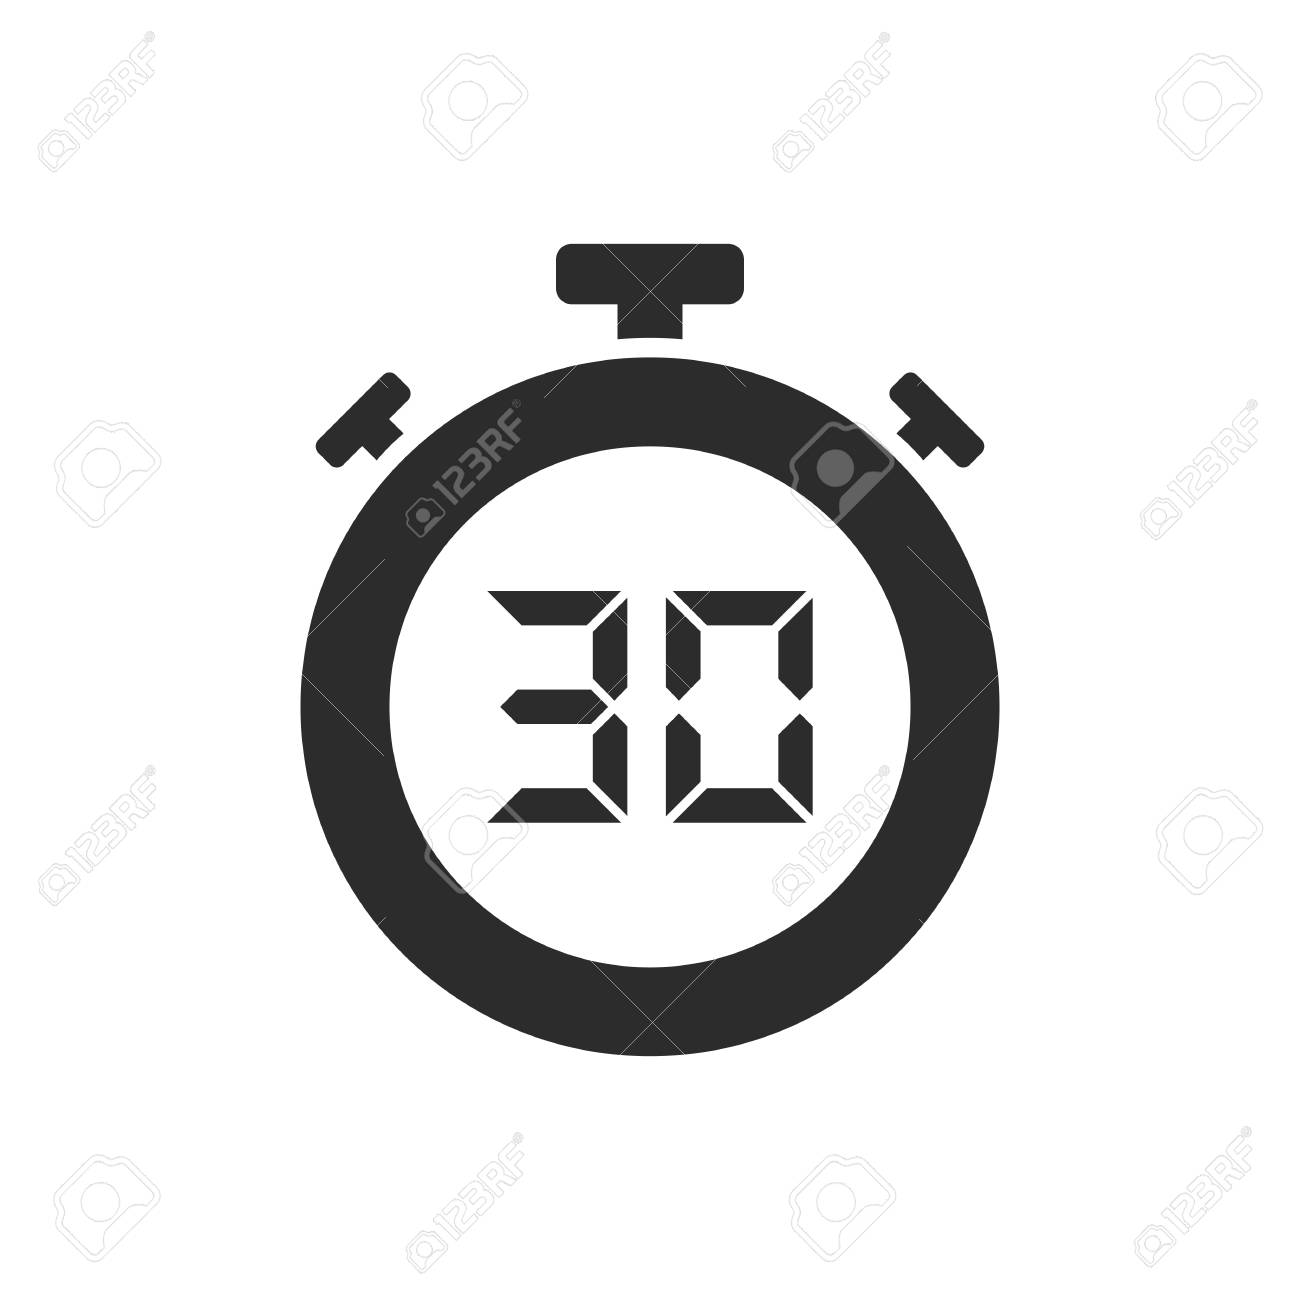 Isolated stopwatch icon with thirty seconds. Vector illustration - 110627920